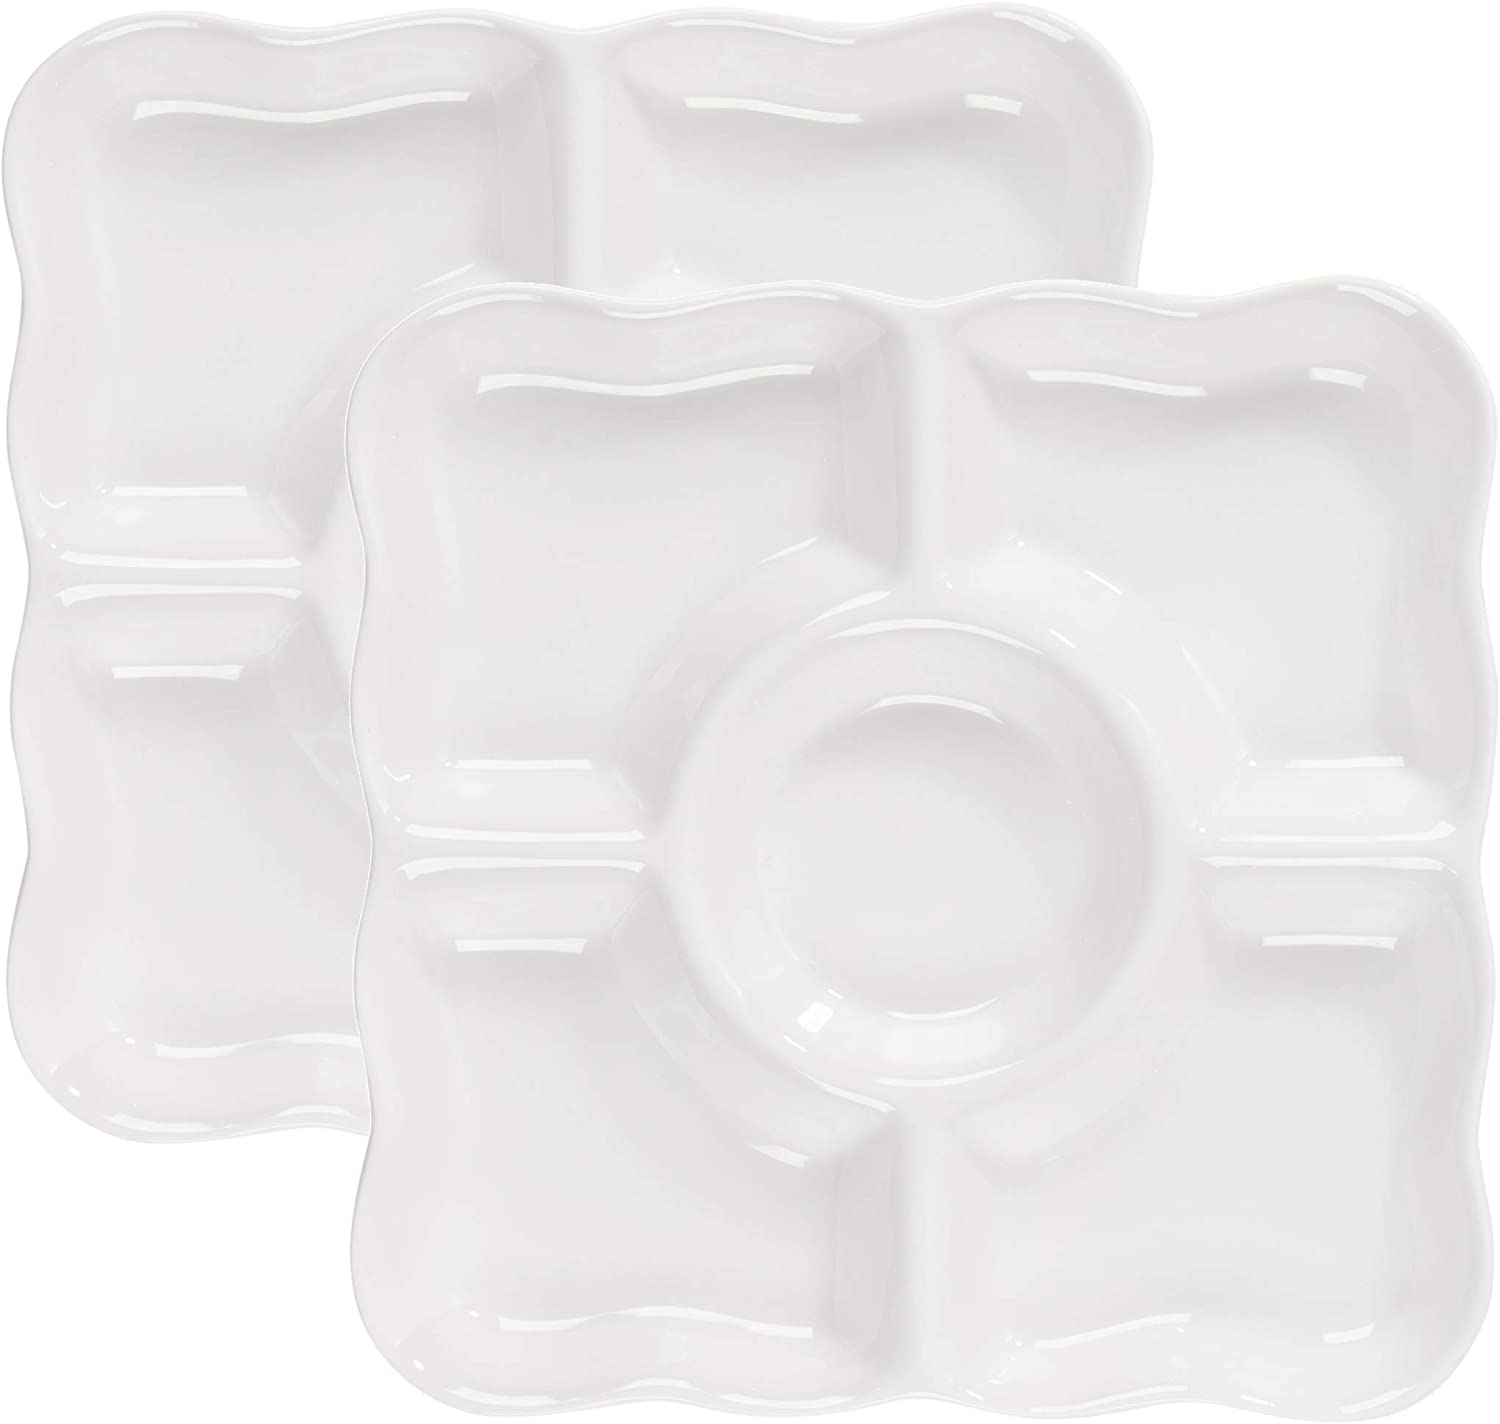 2-Pack Porcelain Appetizer Serving Tray - 5-Compartment Square Divided Serving Platter with Scalloped Rim for Parties, Chips & Dip, Snacks - 9.5 x 9.5 x 1 Inches, White